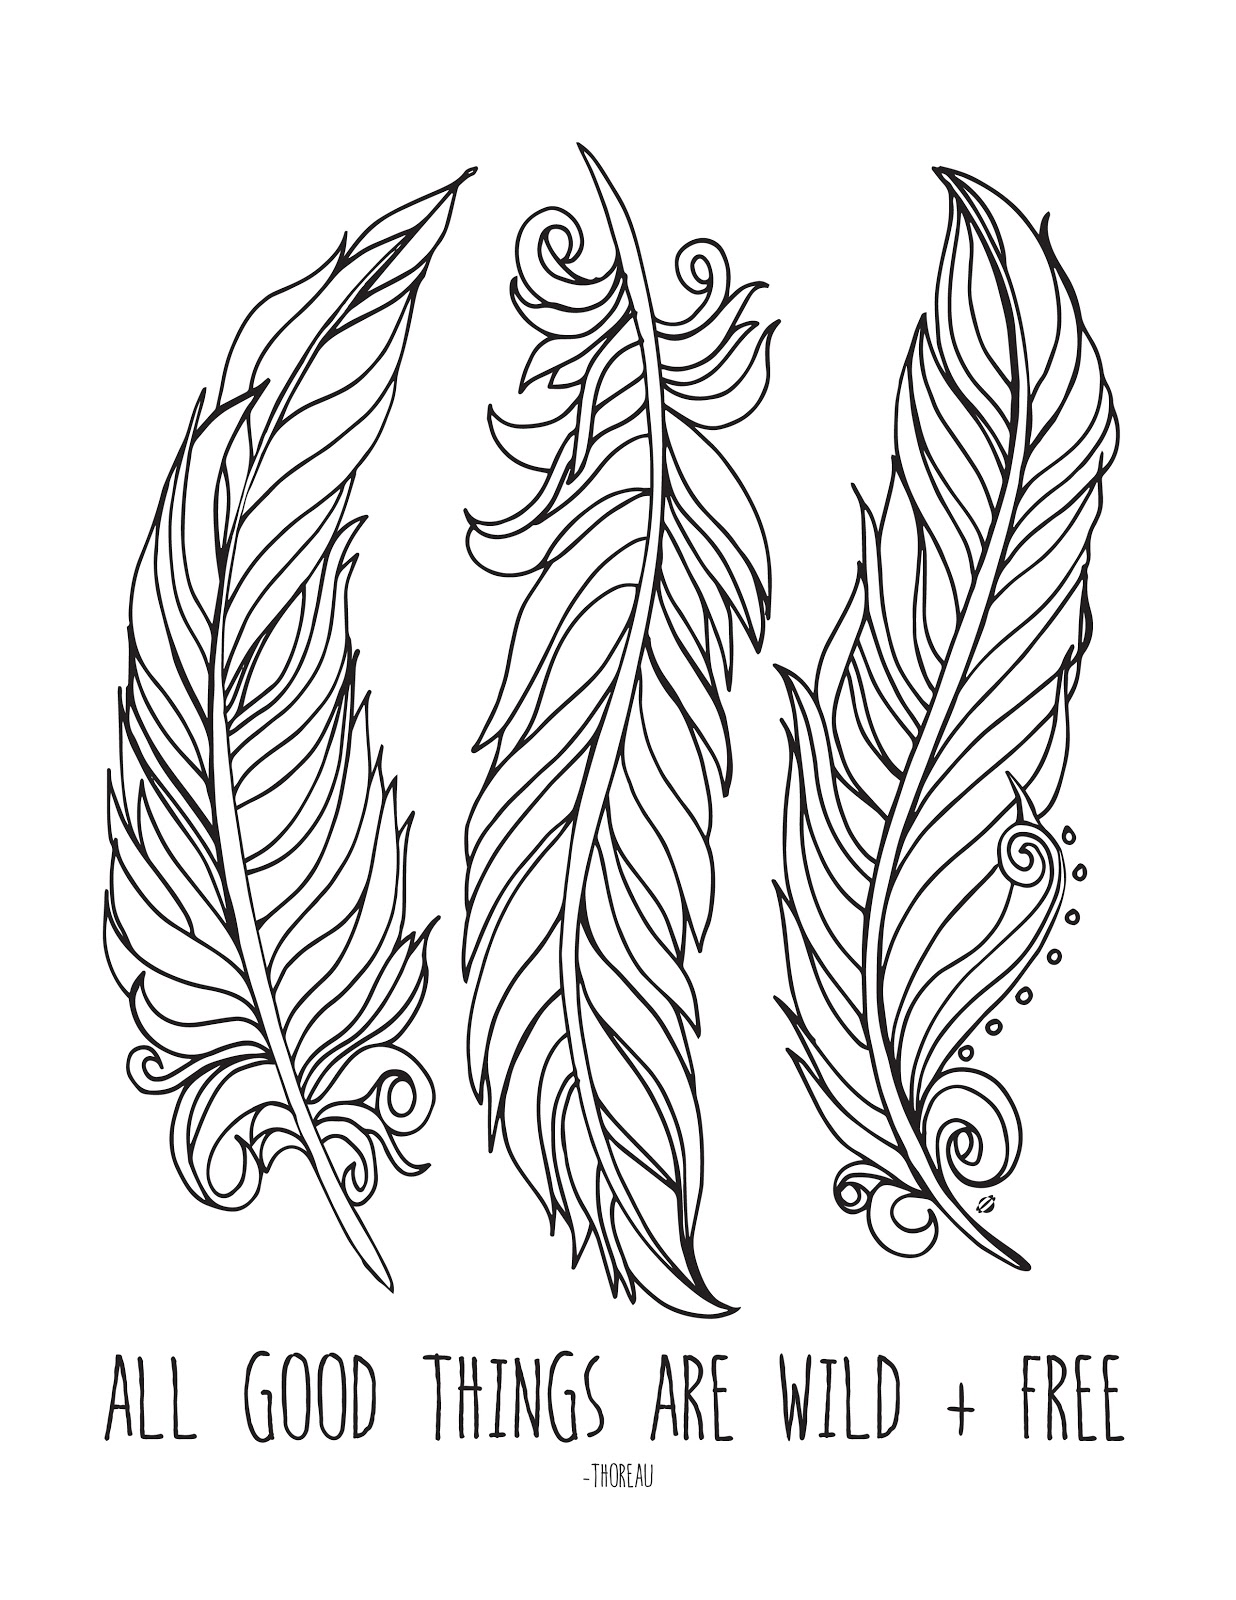 Free coloring pages of peacock feathers coloring everyday printable - Lostbumblebee 2015 Mdbn Grown Up Colouring Coloring Sheets Free Donate To